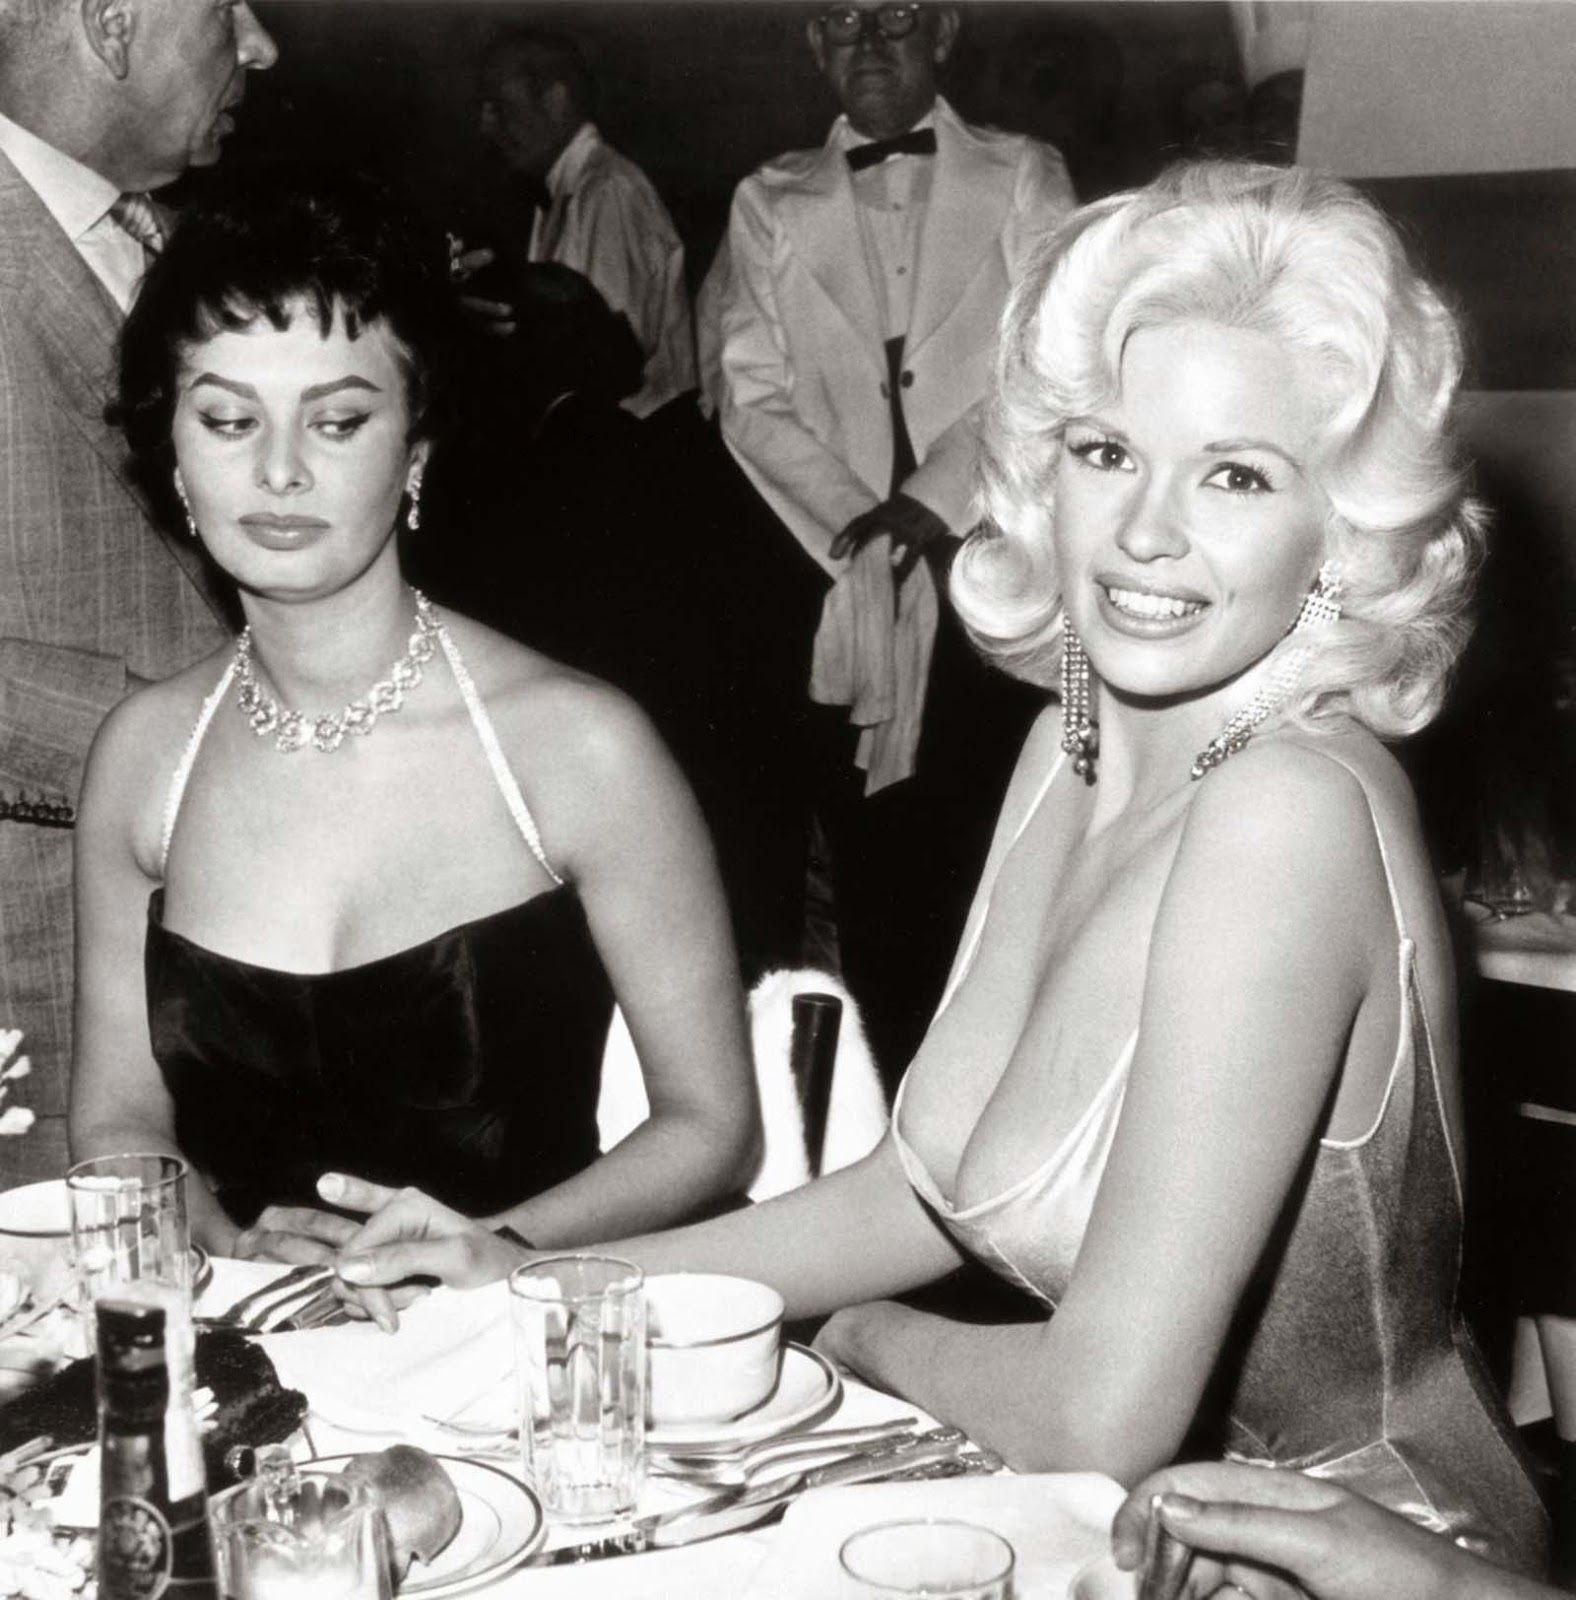 Sophia Loren giving Jayne Mansfield the side-eye is one of the most famous photos in history.